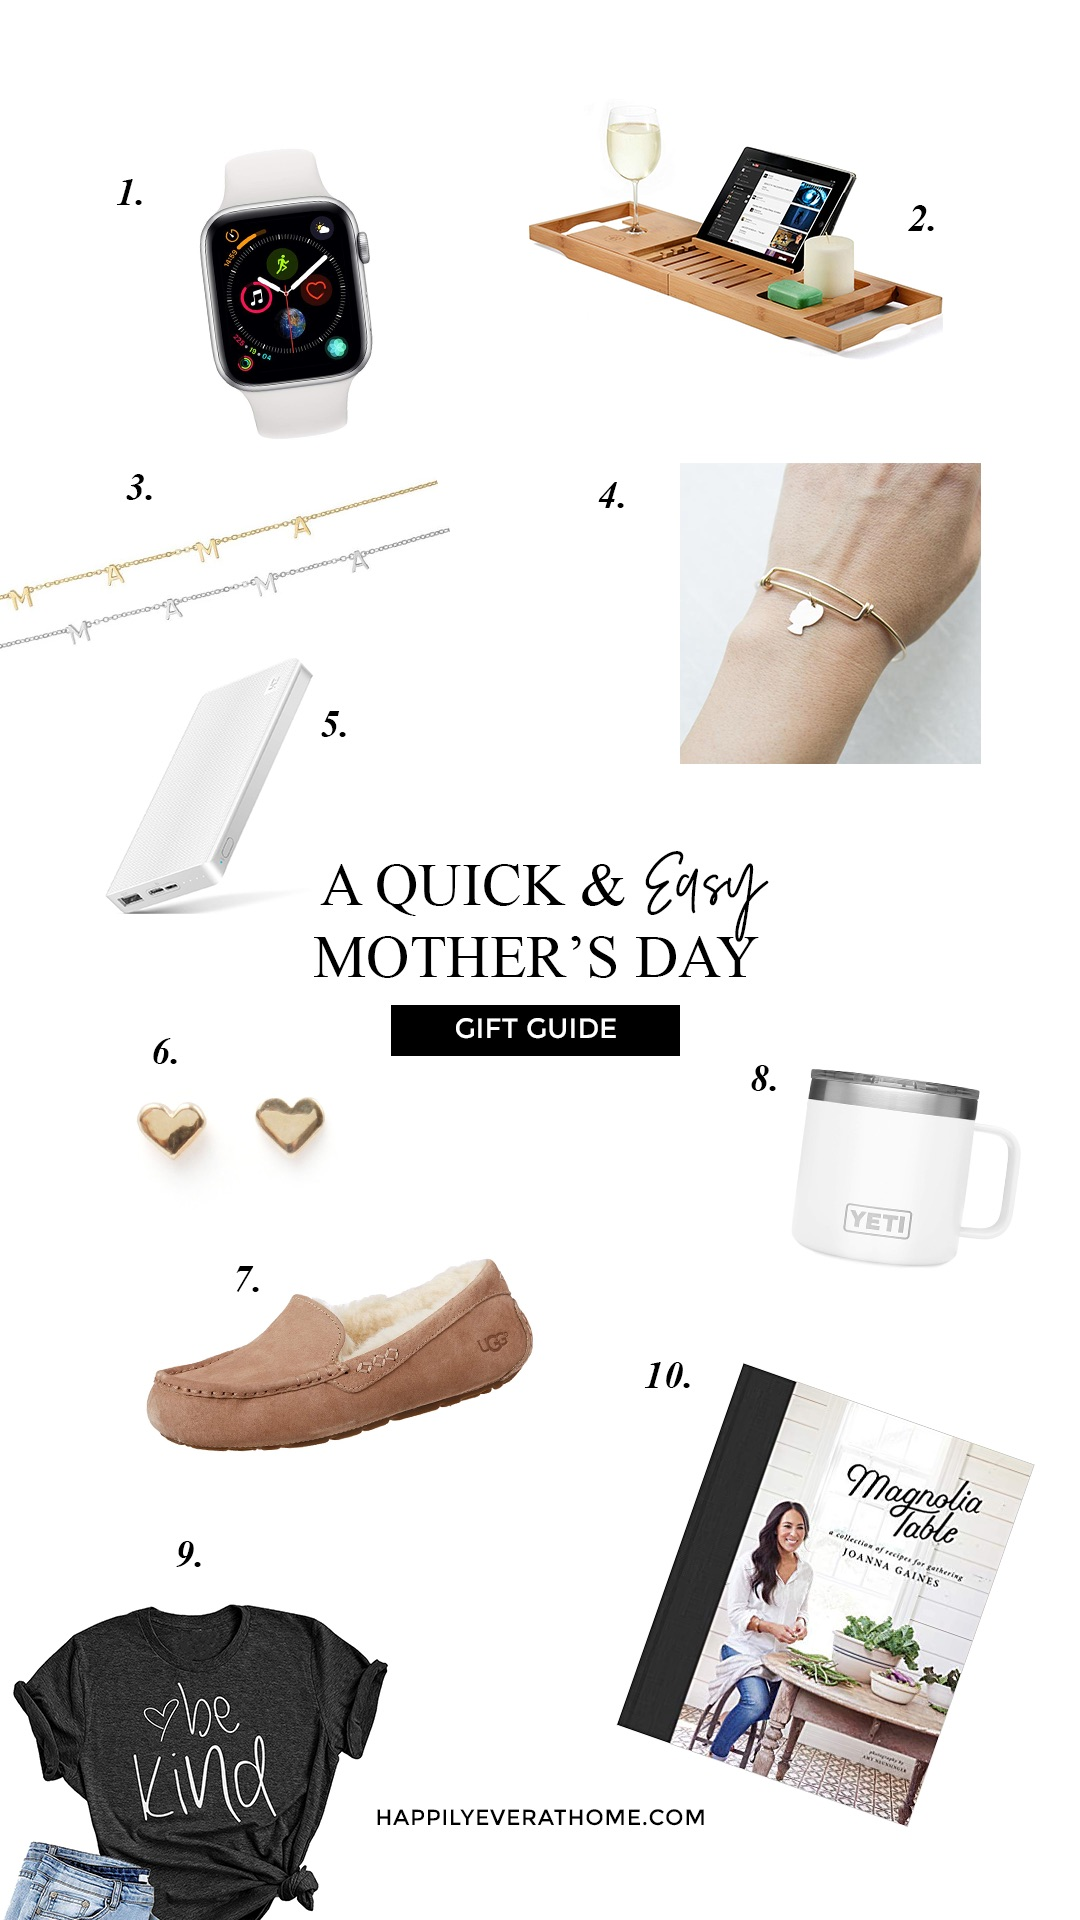 A roundup of Mother's Day gift guide ideas